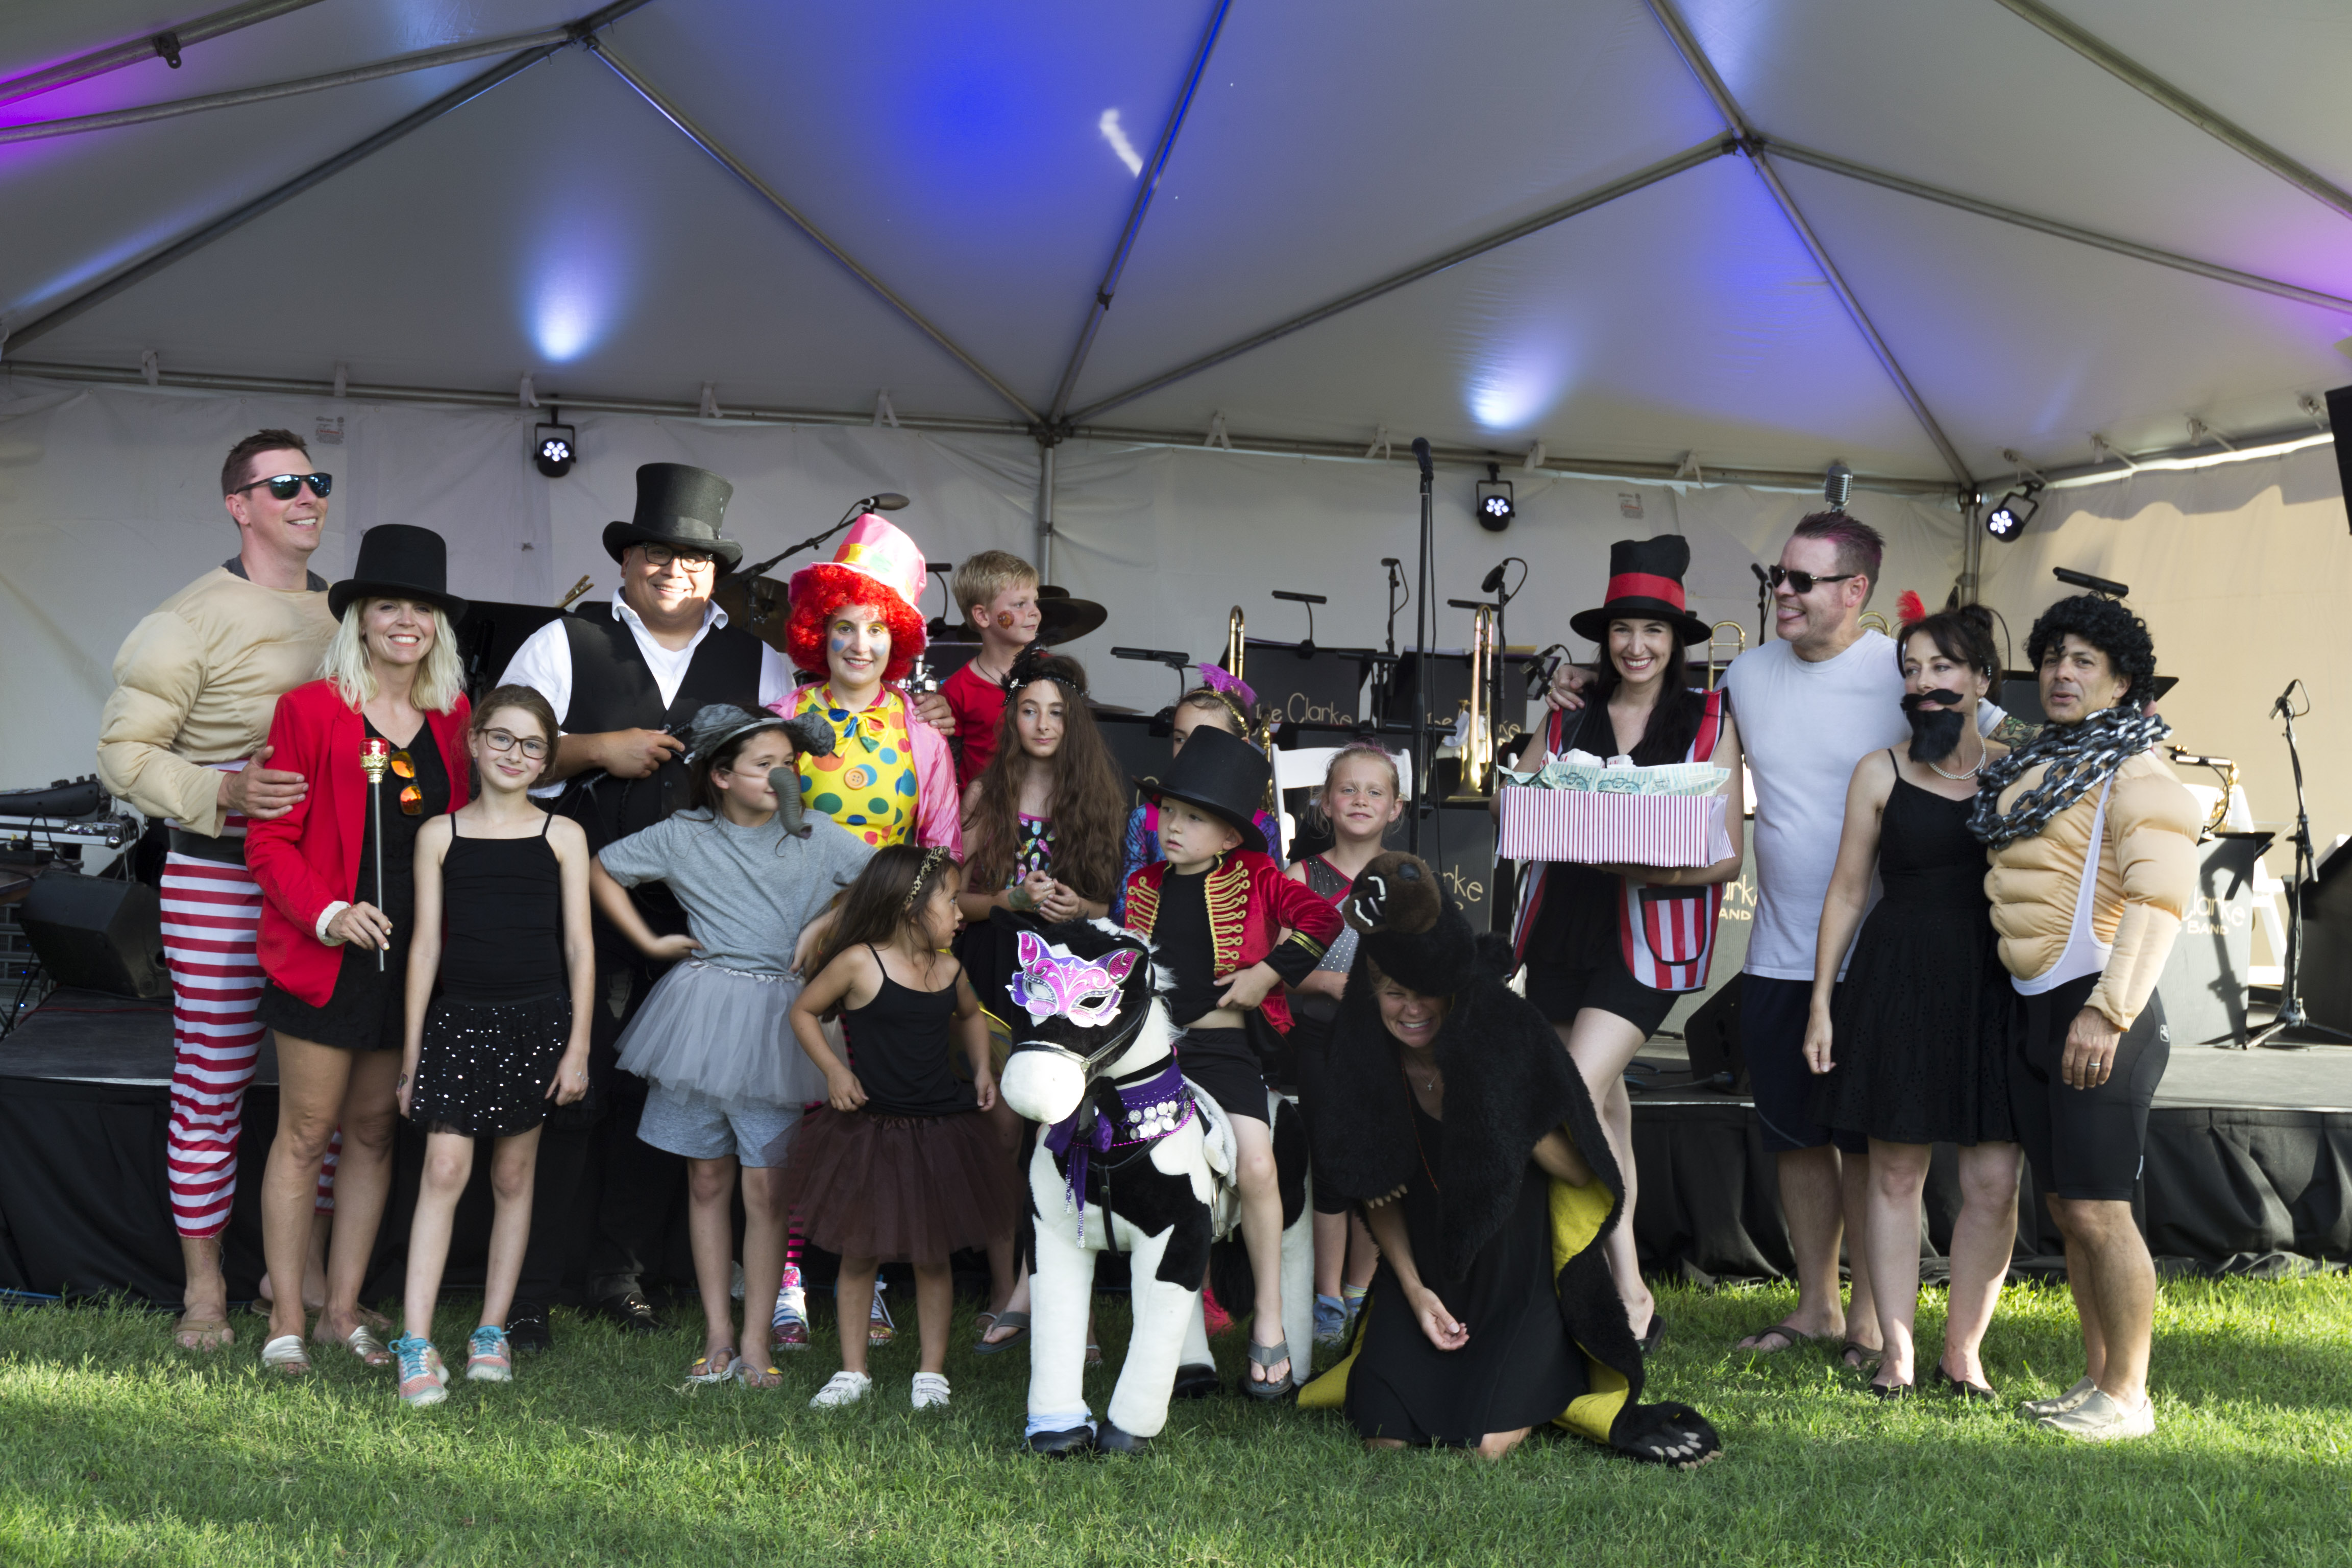 """The """"This Is Us"""" tent won first place for most elaborate and creative picnic spread. The group donated their $250 in prize money to the Charleston Animal Society."""